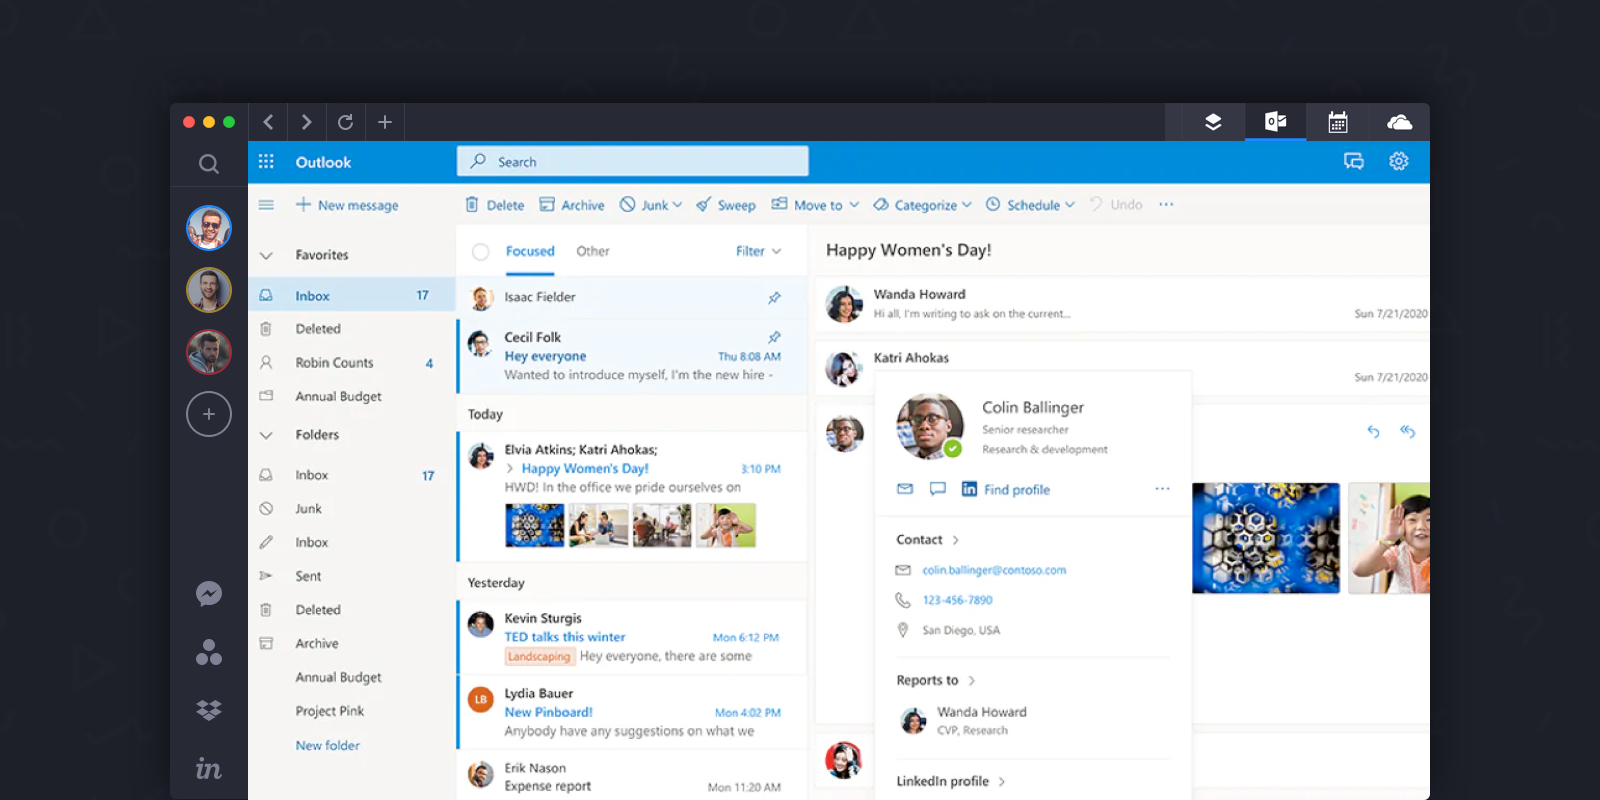 outlook ui